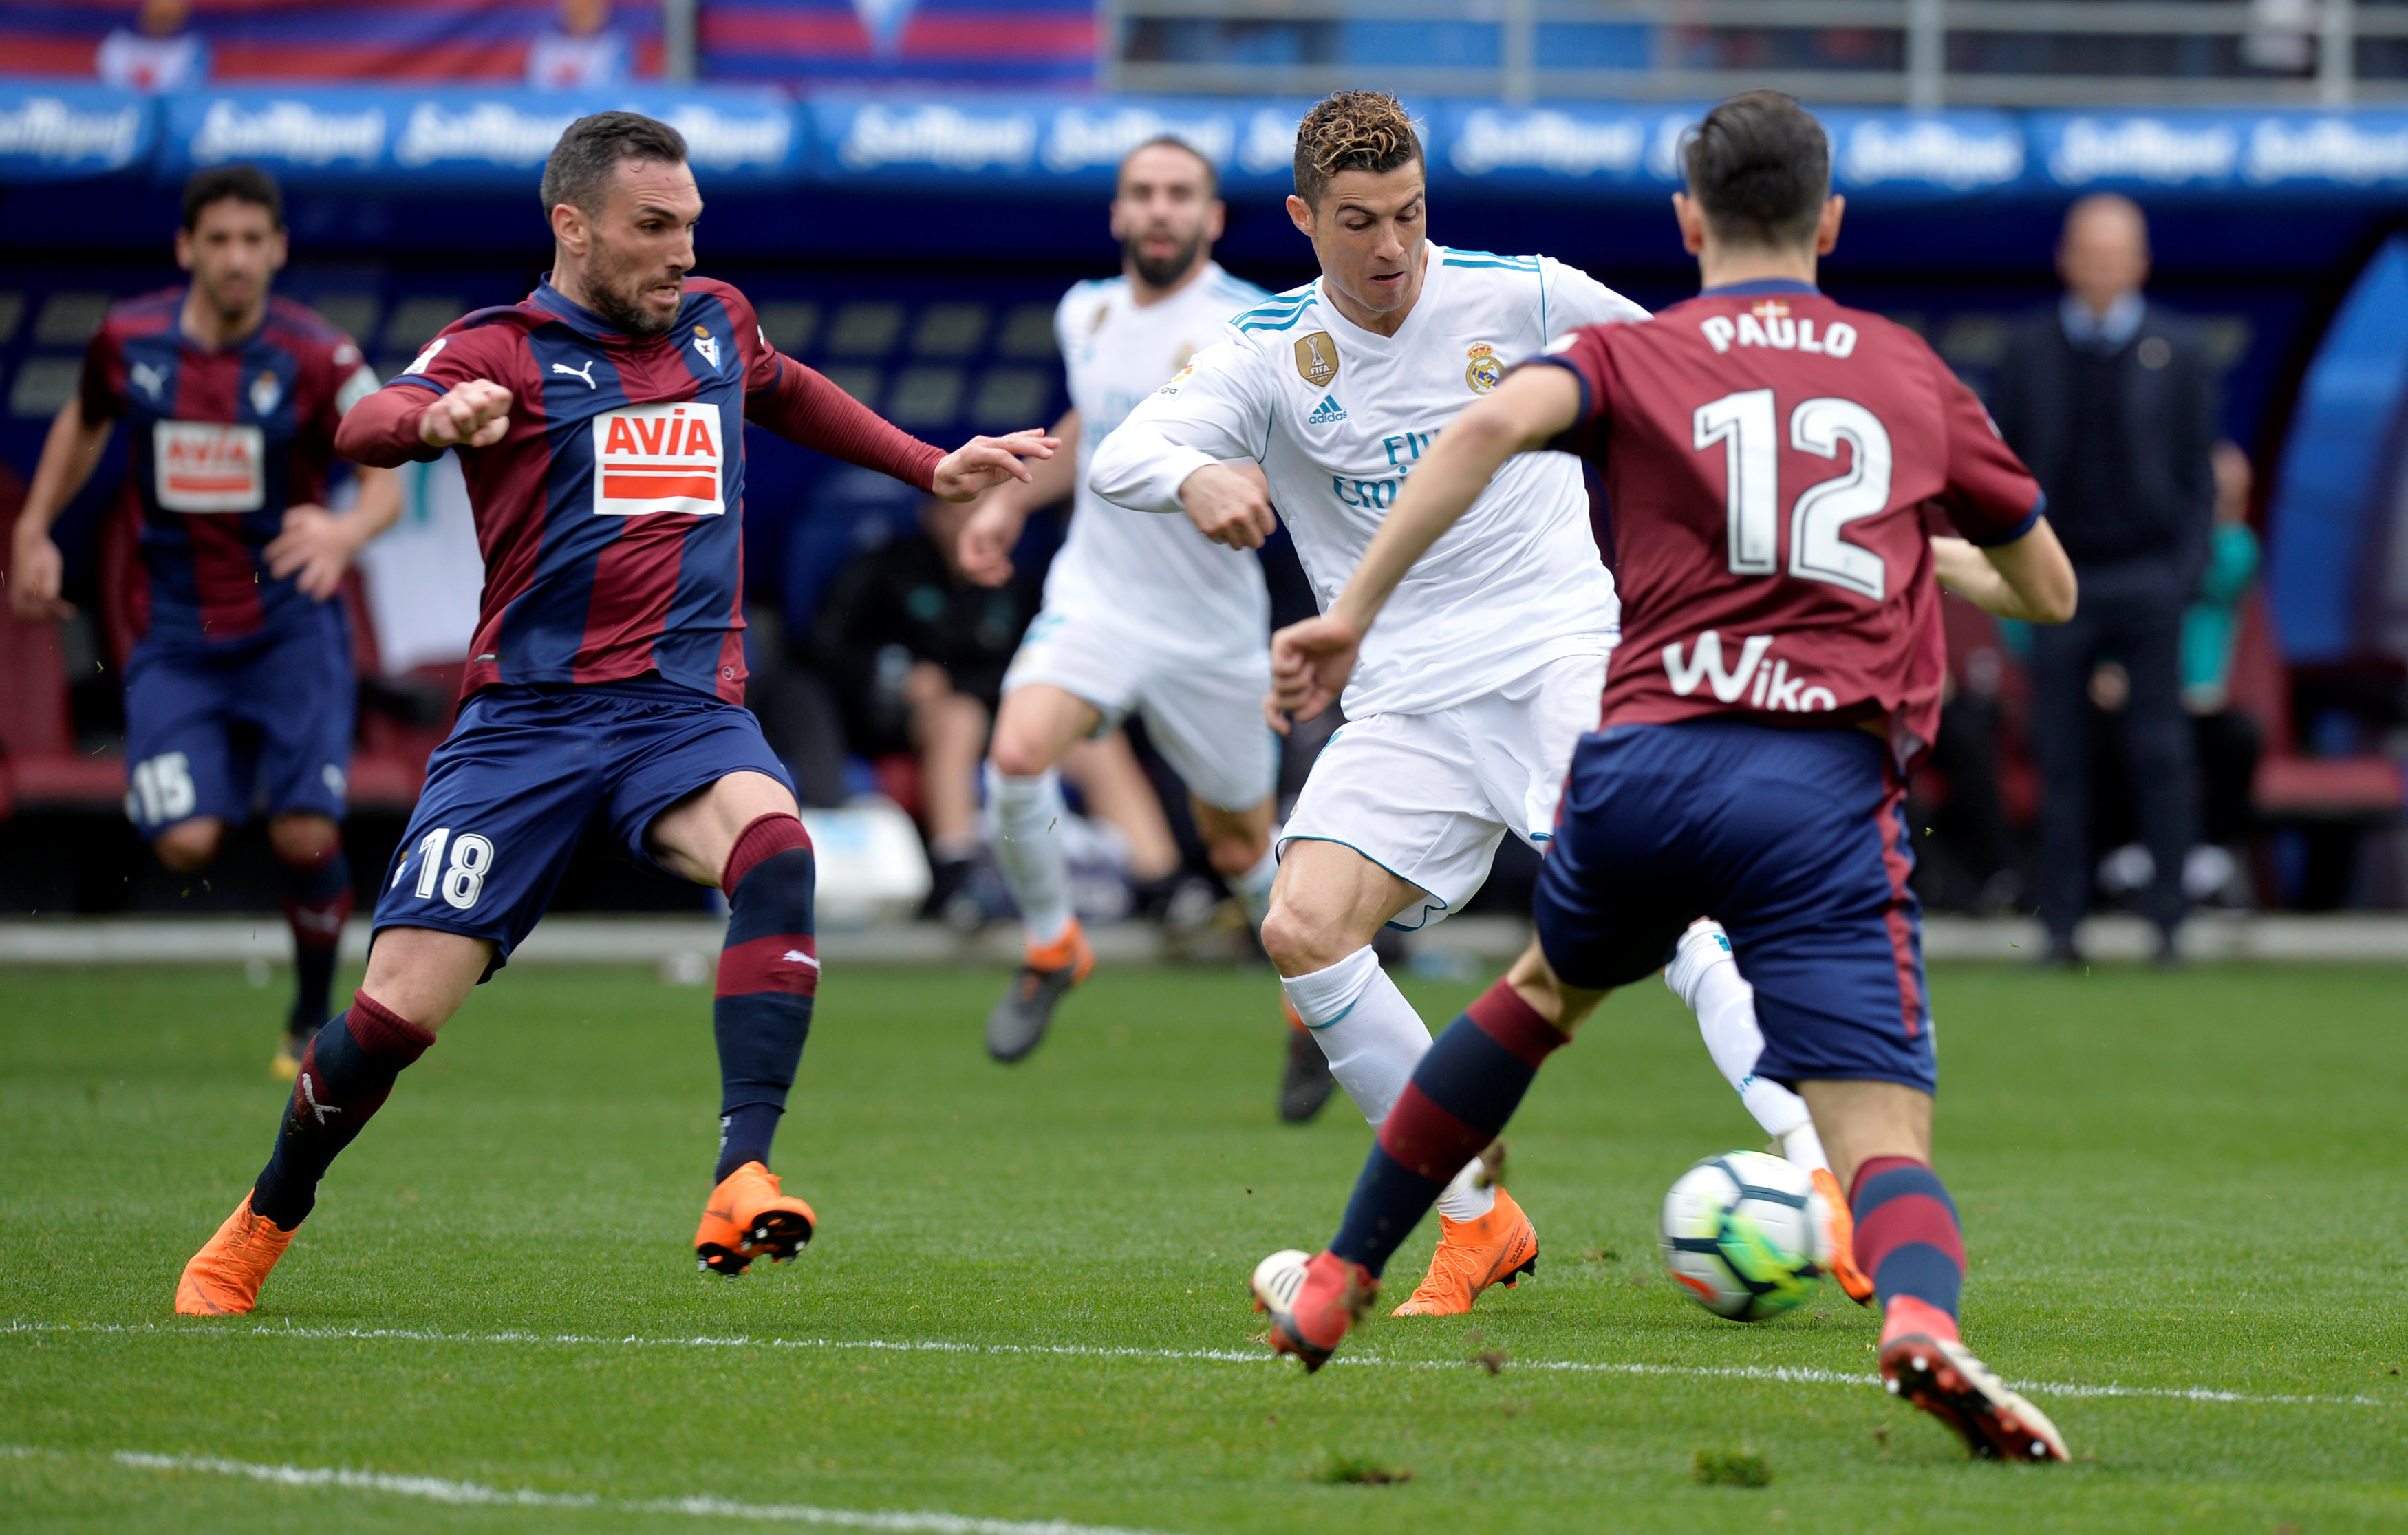 Soccer Football - La Liga Santander - Eibar vs Real Madrid - Ipurua, Eibar, Spain - March 10, 2018   Real Madridu2019s Cristiano Ronaldo in action with Eibaru2019s Anaitz Arbilla and Paulo Oliveira             REUTERS/Vincent West